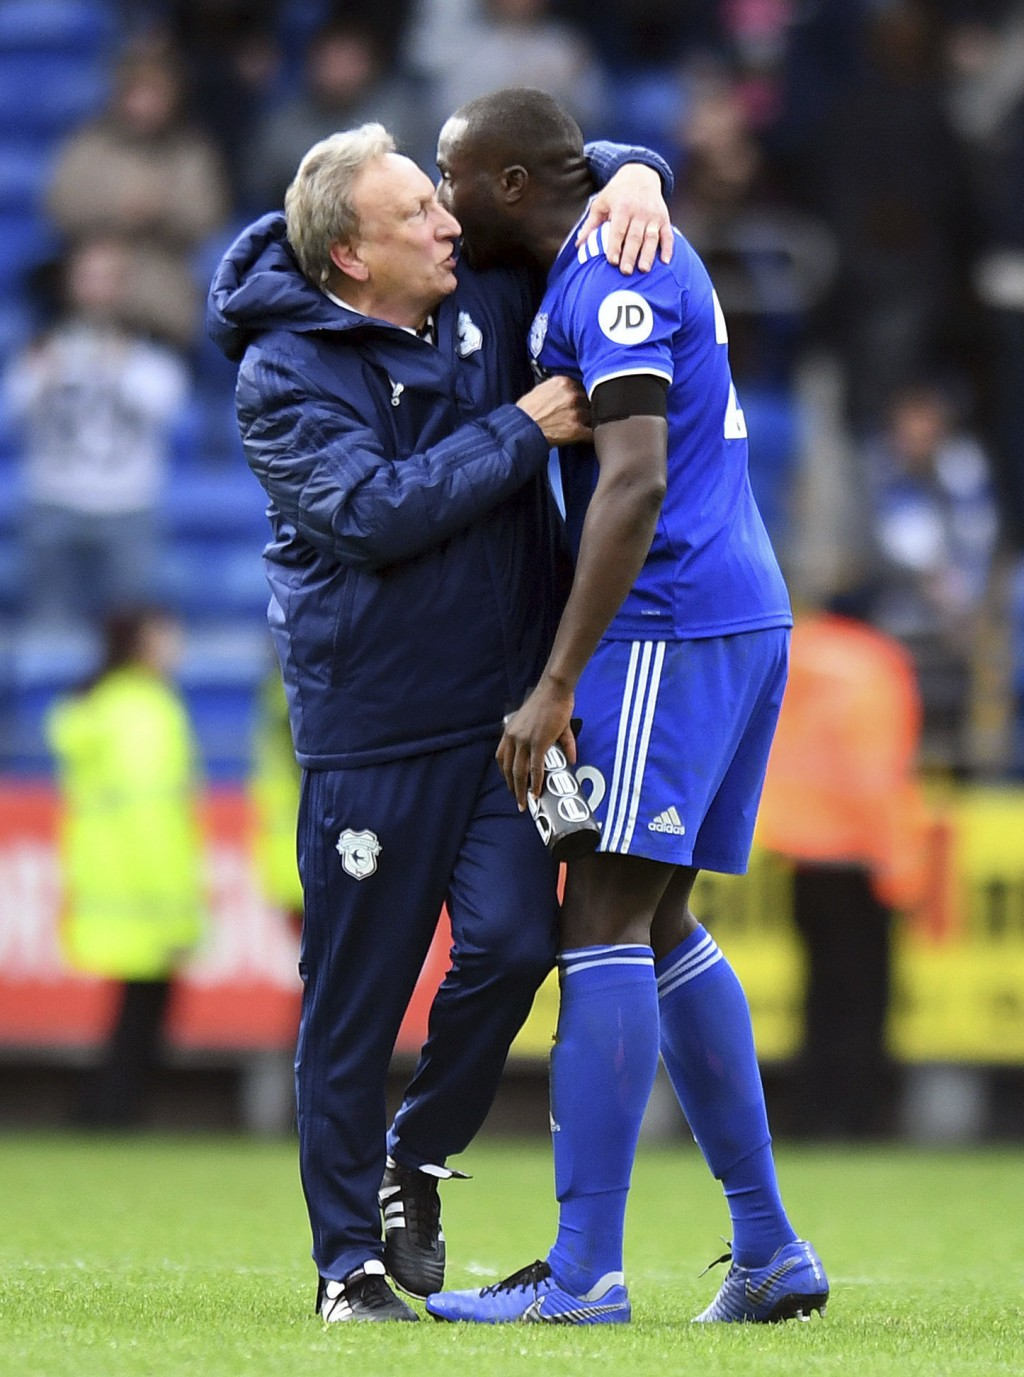 Cardiff City manager Neil Warnock, left, embraces winning goal scorer Sol Bamba after the English Premier League soccer match between Cardiff City and